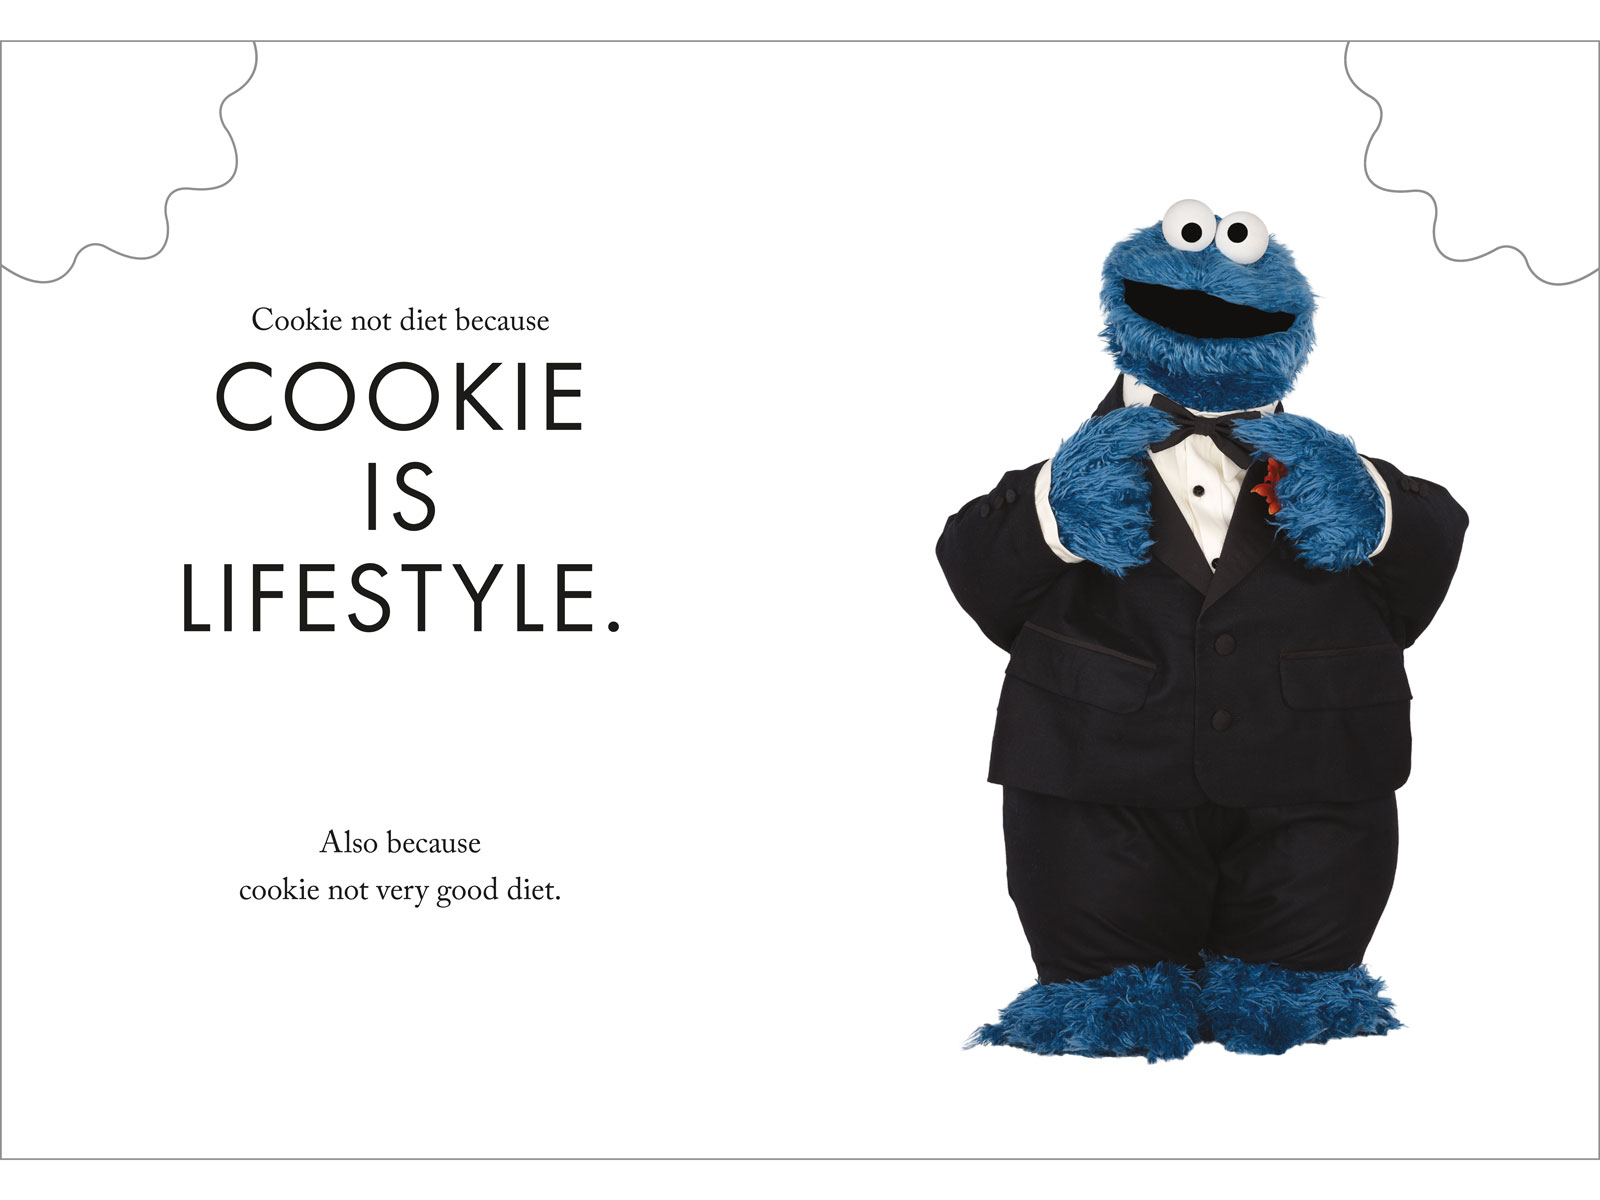 cookie-monster-book-image2-FT-BLOG0418.jpg